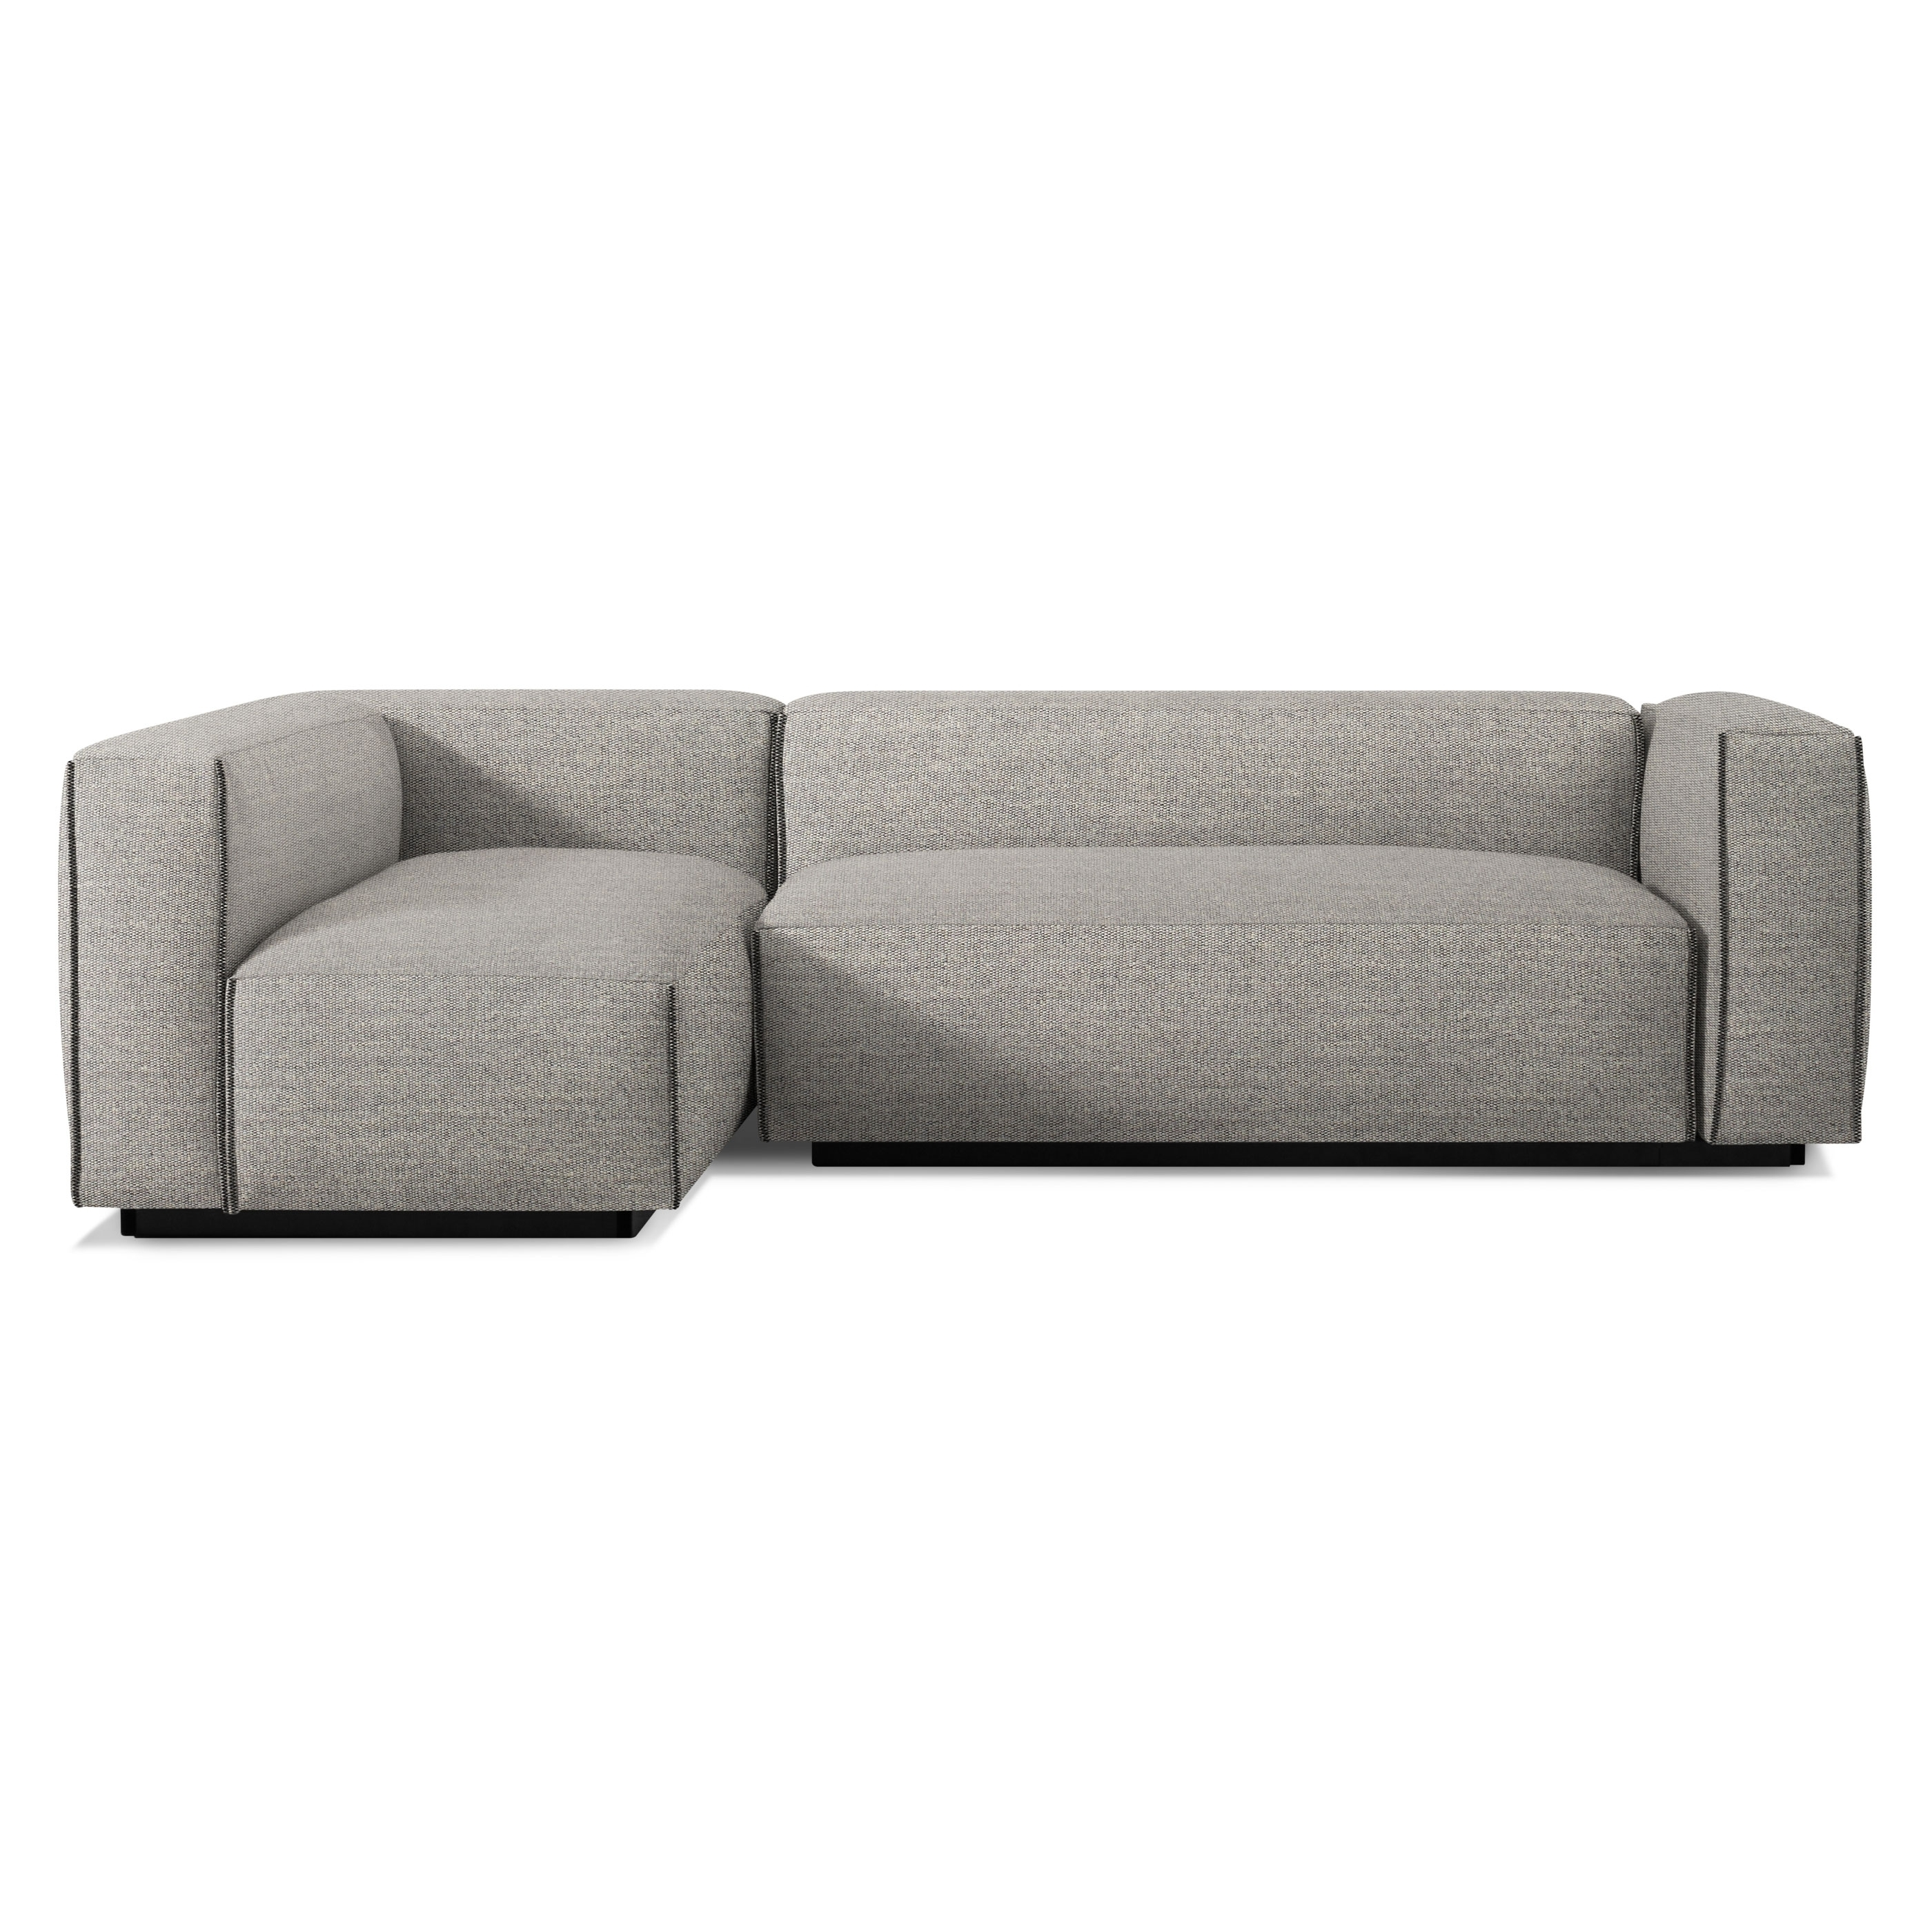 Sydney Sectional Sofas Within Favorite Small Sectional Sofa – Modern Sectional Sofas (View 13 of 20)